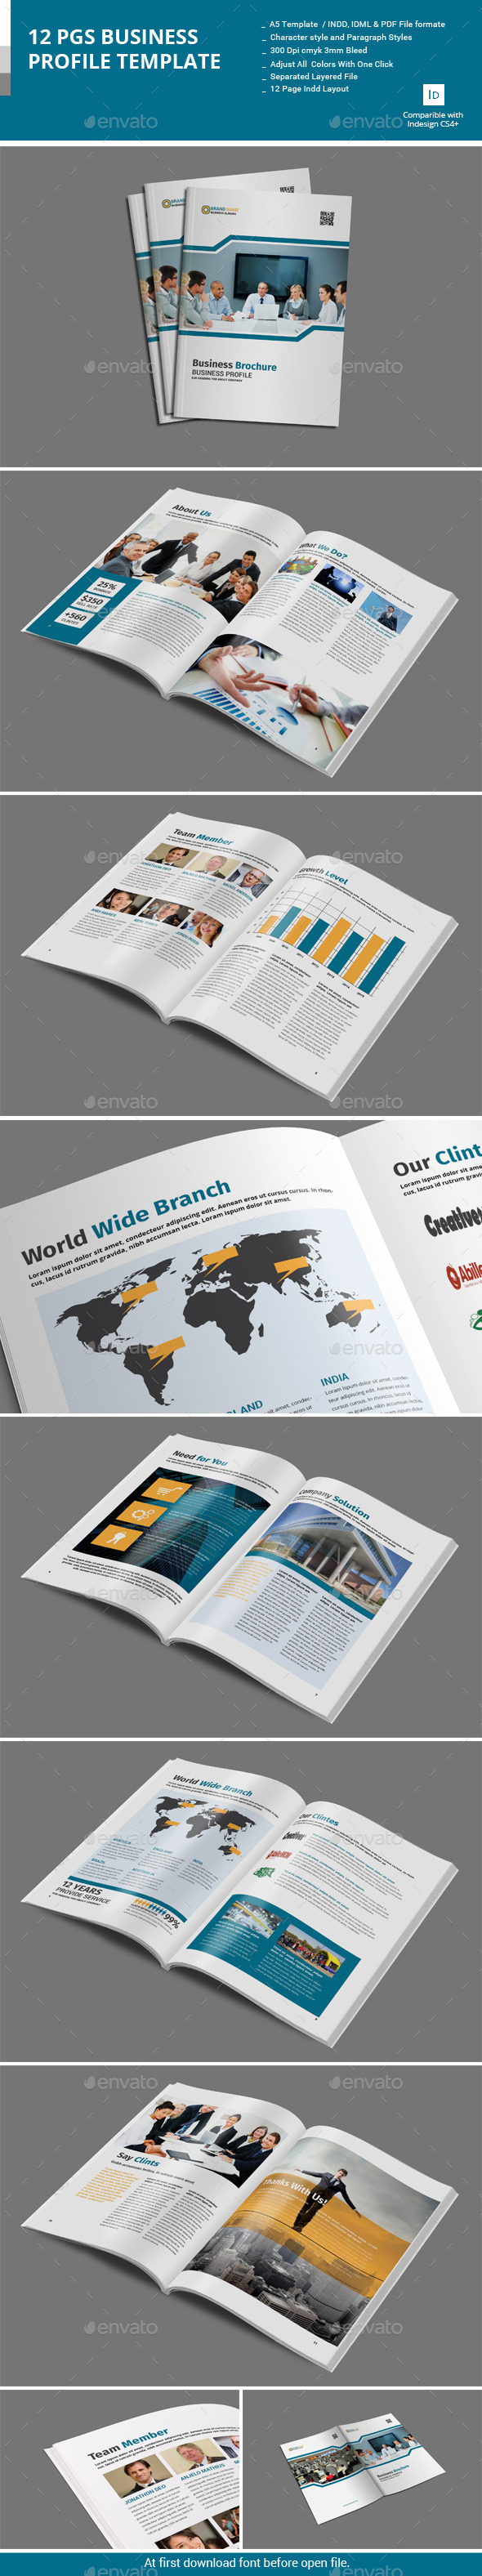 GraphicRiver 12 Pages Business Profile Template 10998830